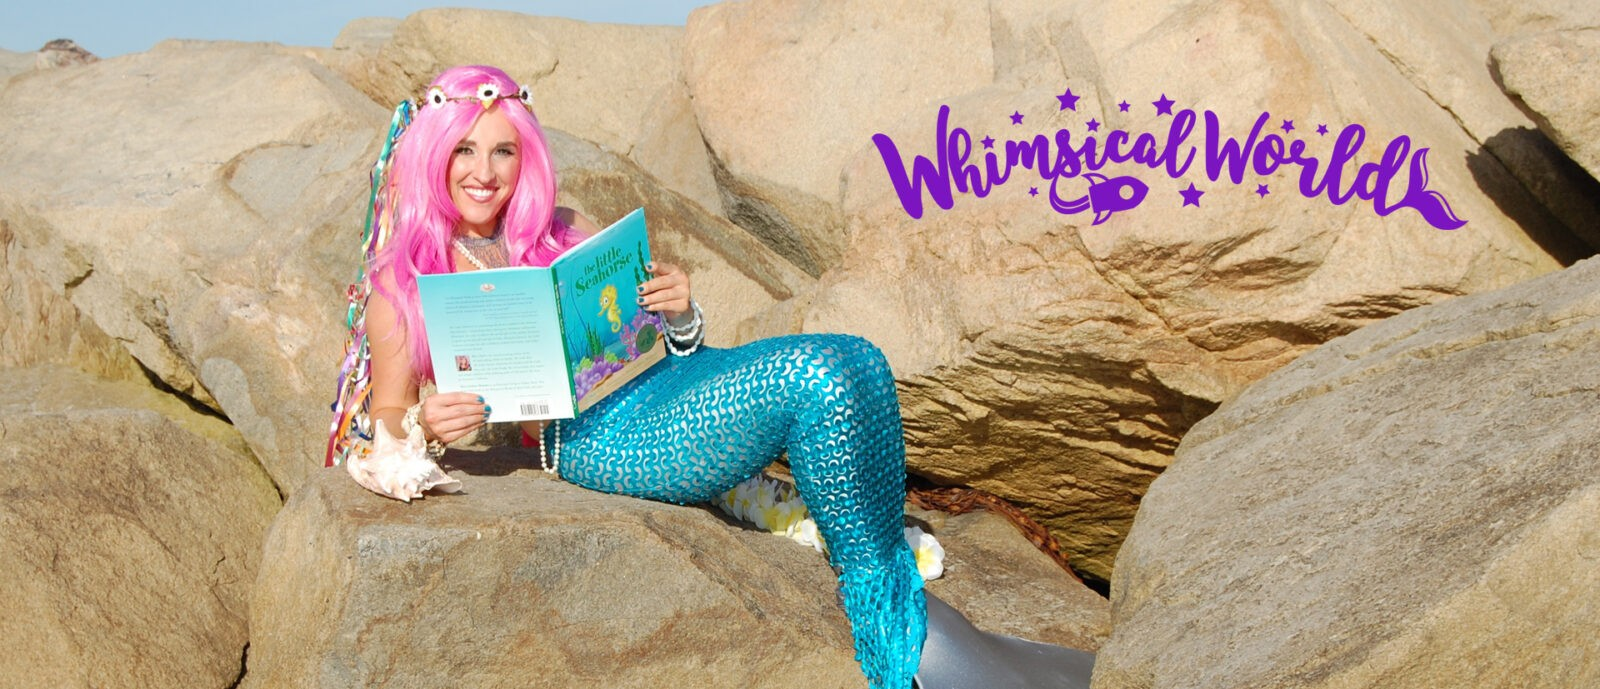 Whimsical World Mermaid Sheri Fink